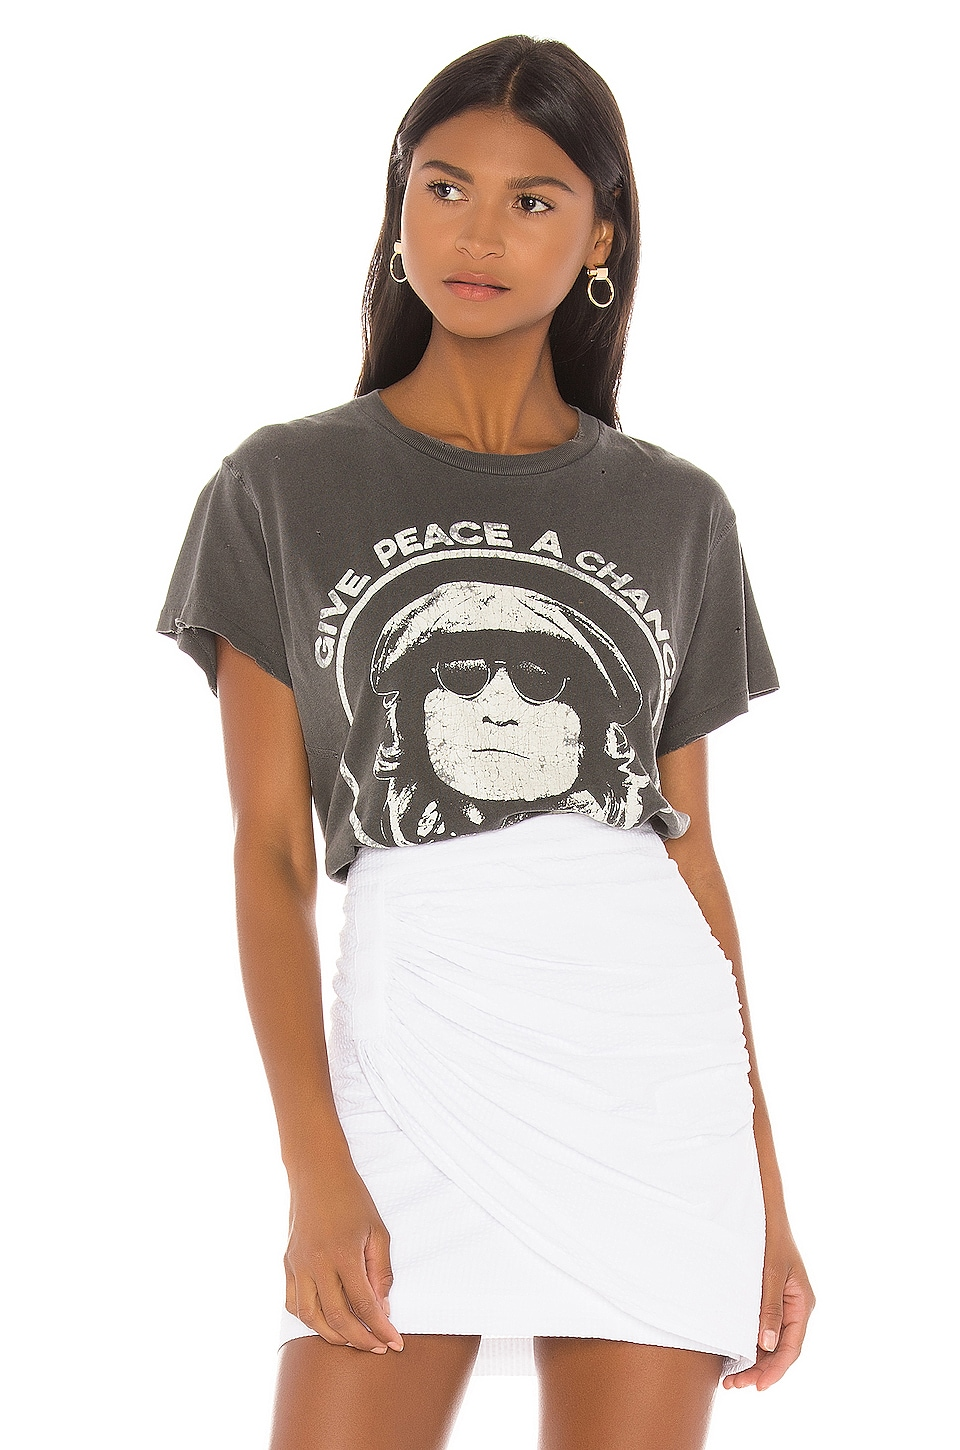 Madeworn John Lennon Give Peace A Chance Tee in Black Pigment